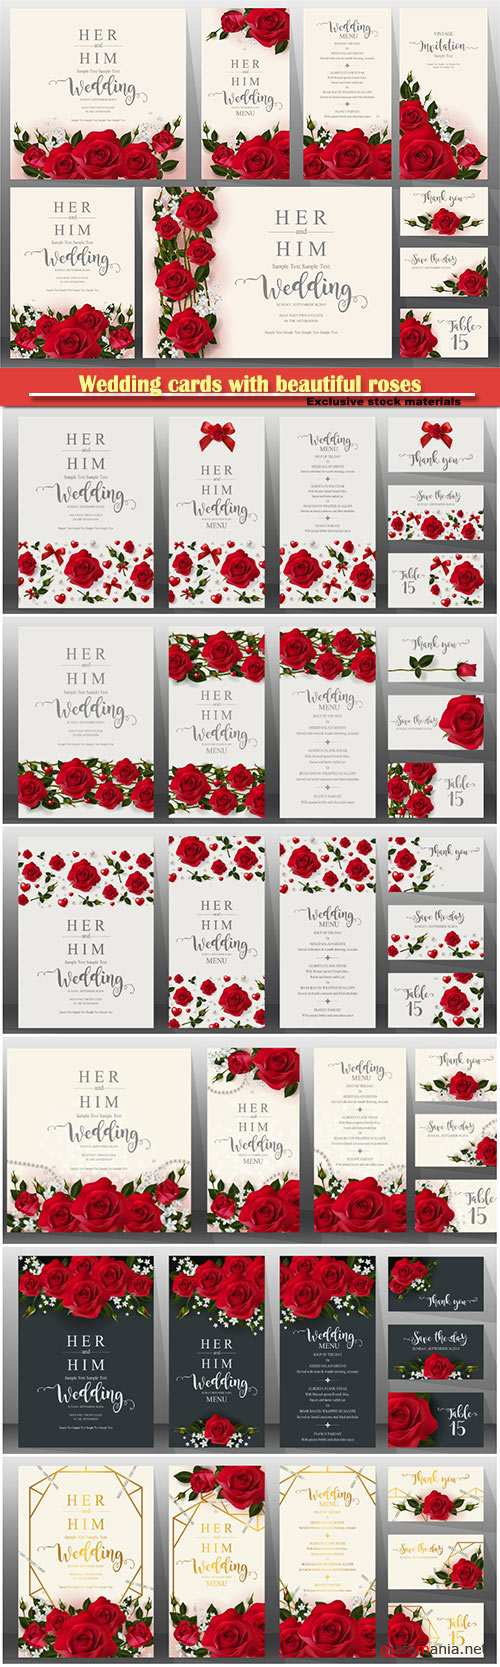 Wedding cards with beautiful roses vector illustration